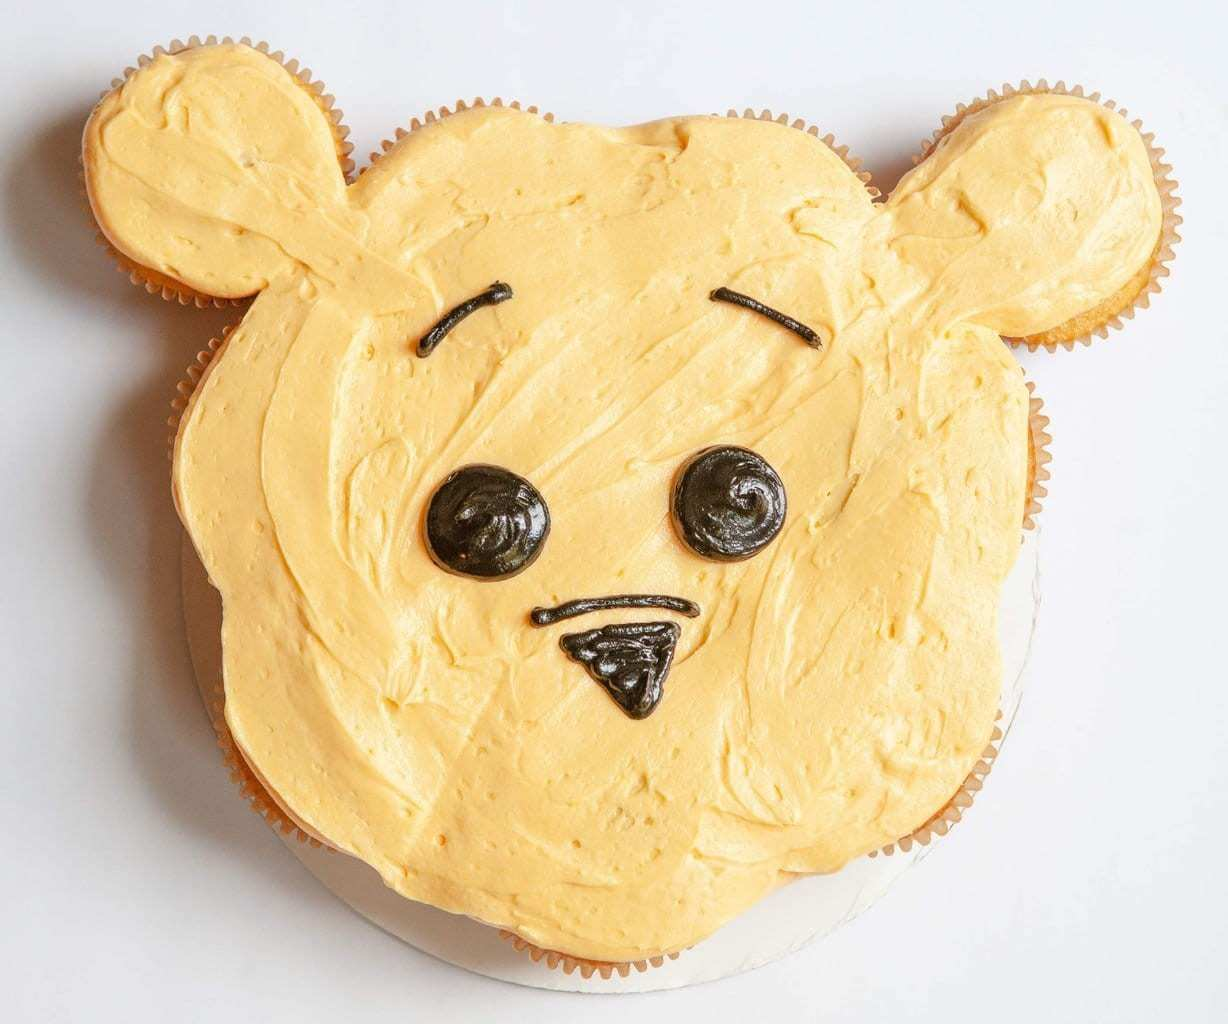 Winnie the Pooh Pull Apart Cupcakes, Winnie the Pooh cupcakes, Christopher Robin inspired recipe, Pooh Cupcakes